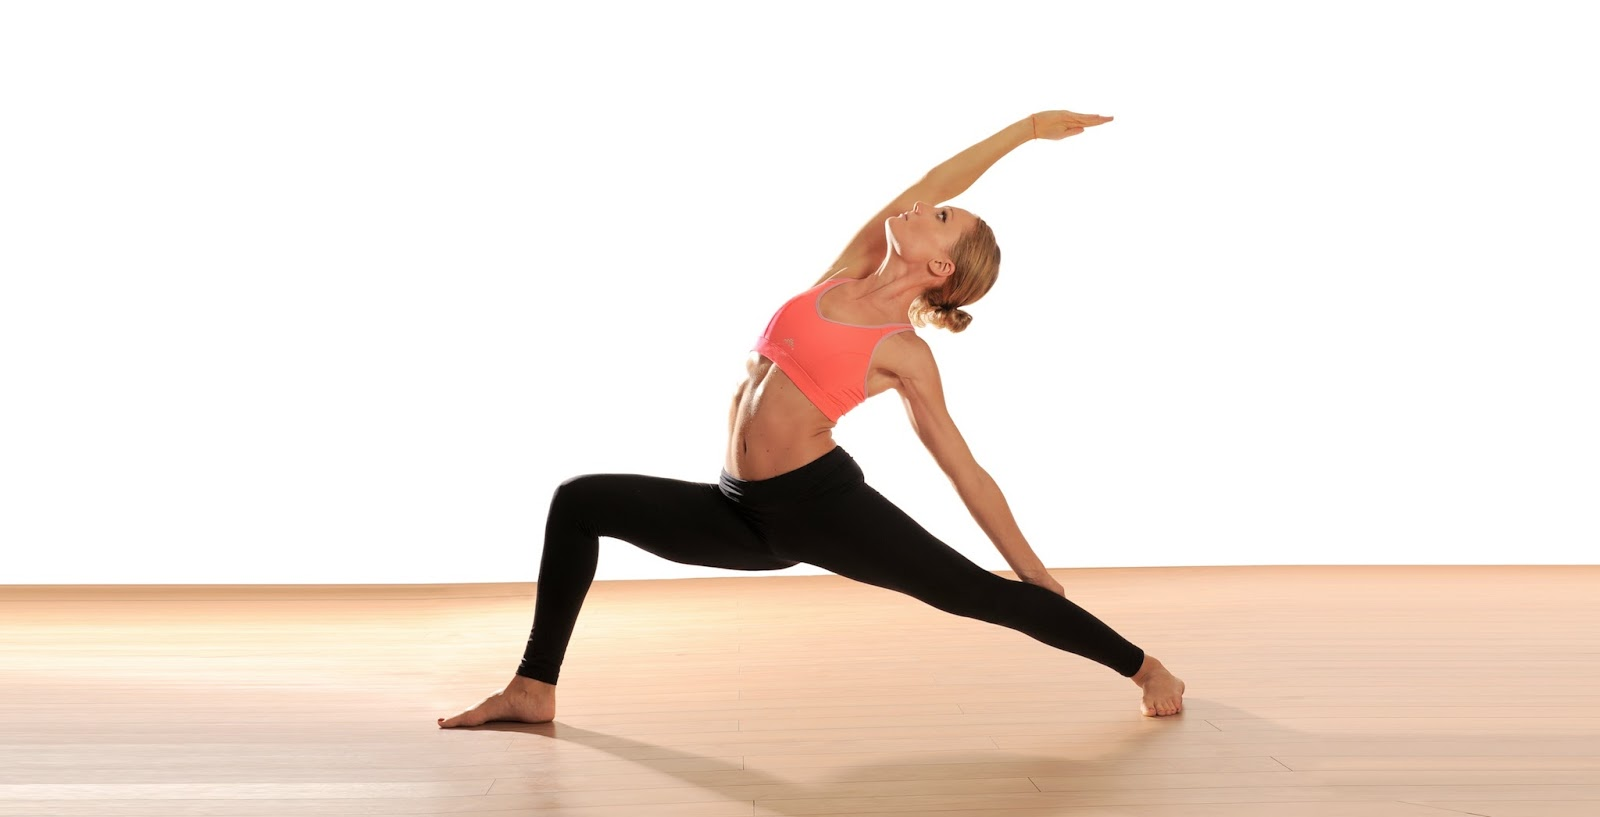 What are the real benefits of doing yoga in daily life? 3